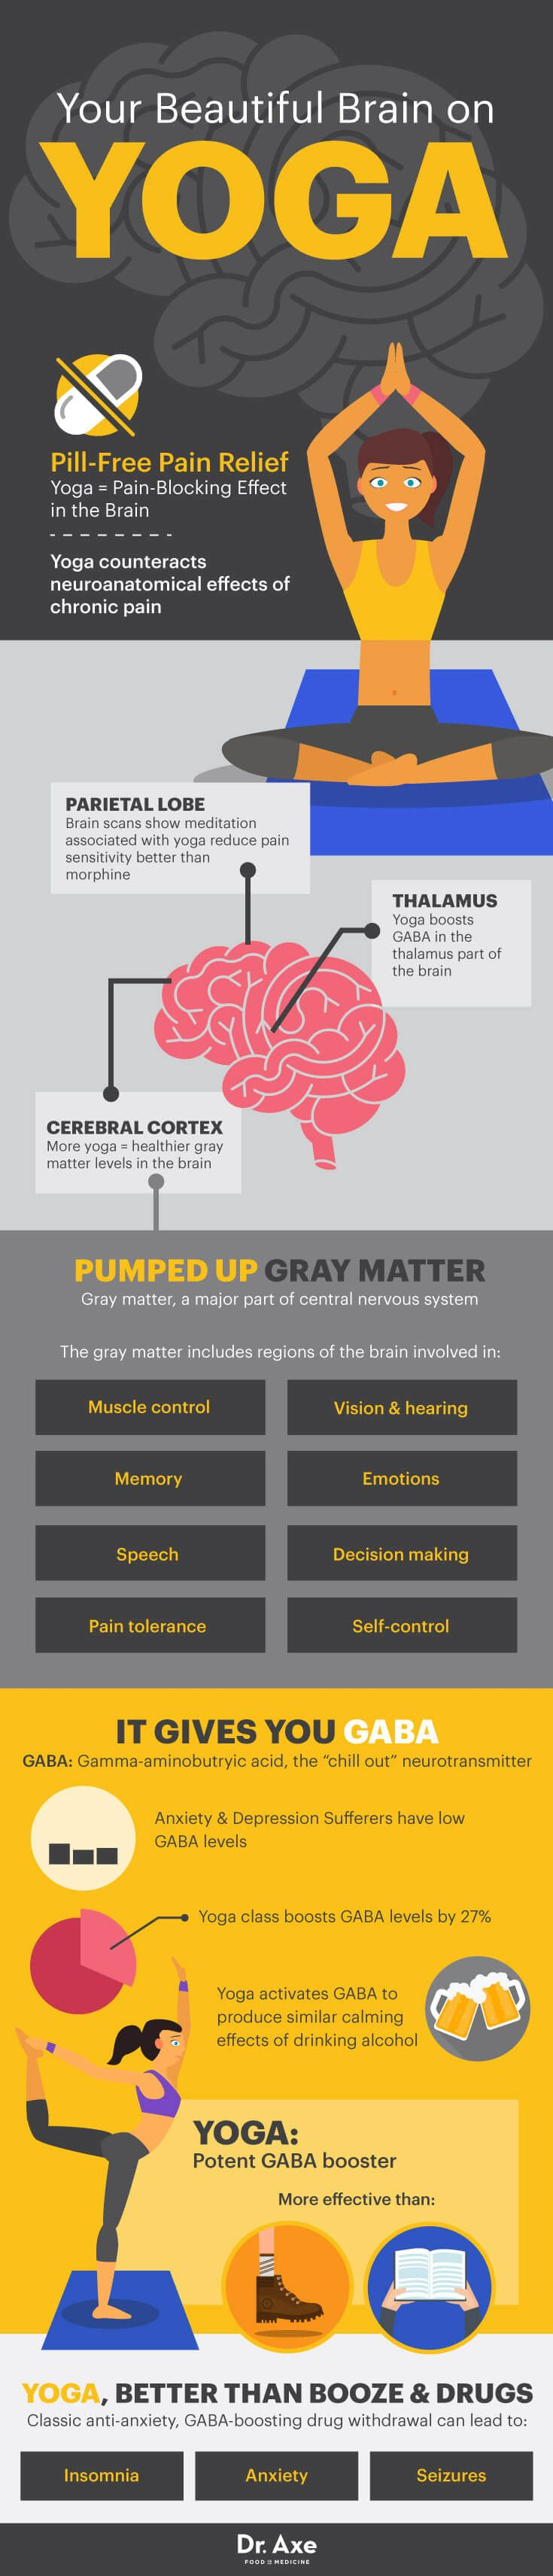 Yoga Builds Healthier Gray Matter in the Brain